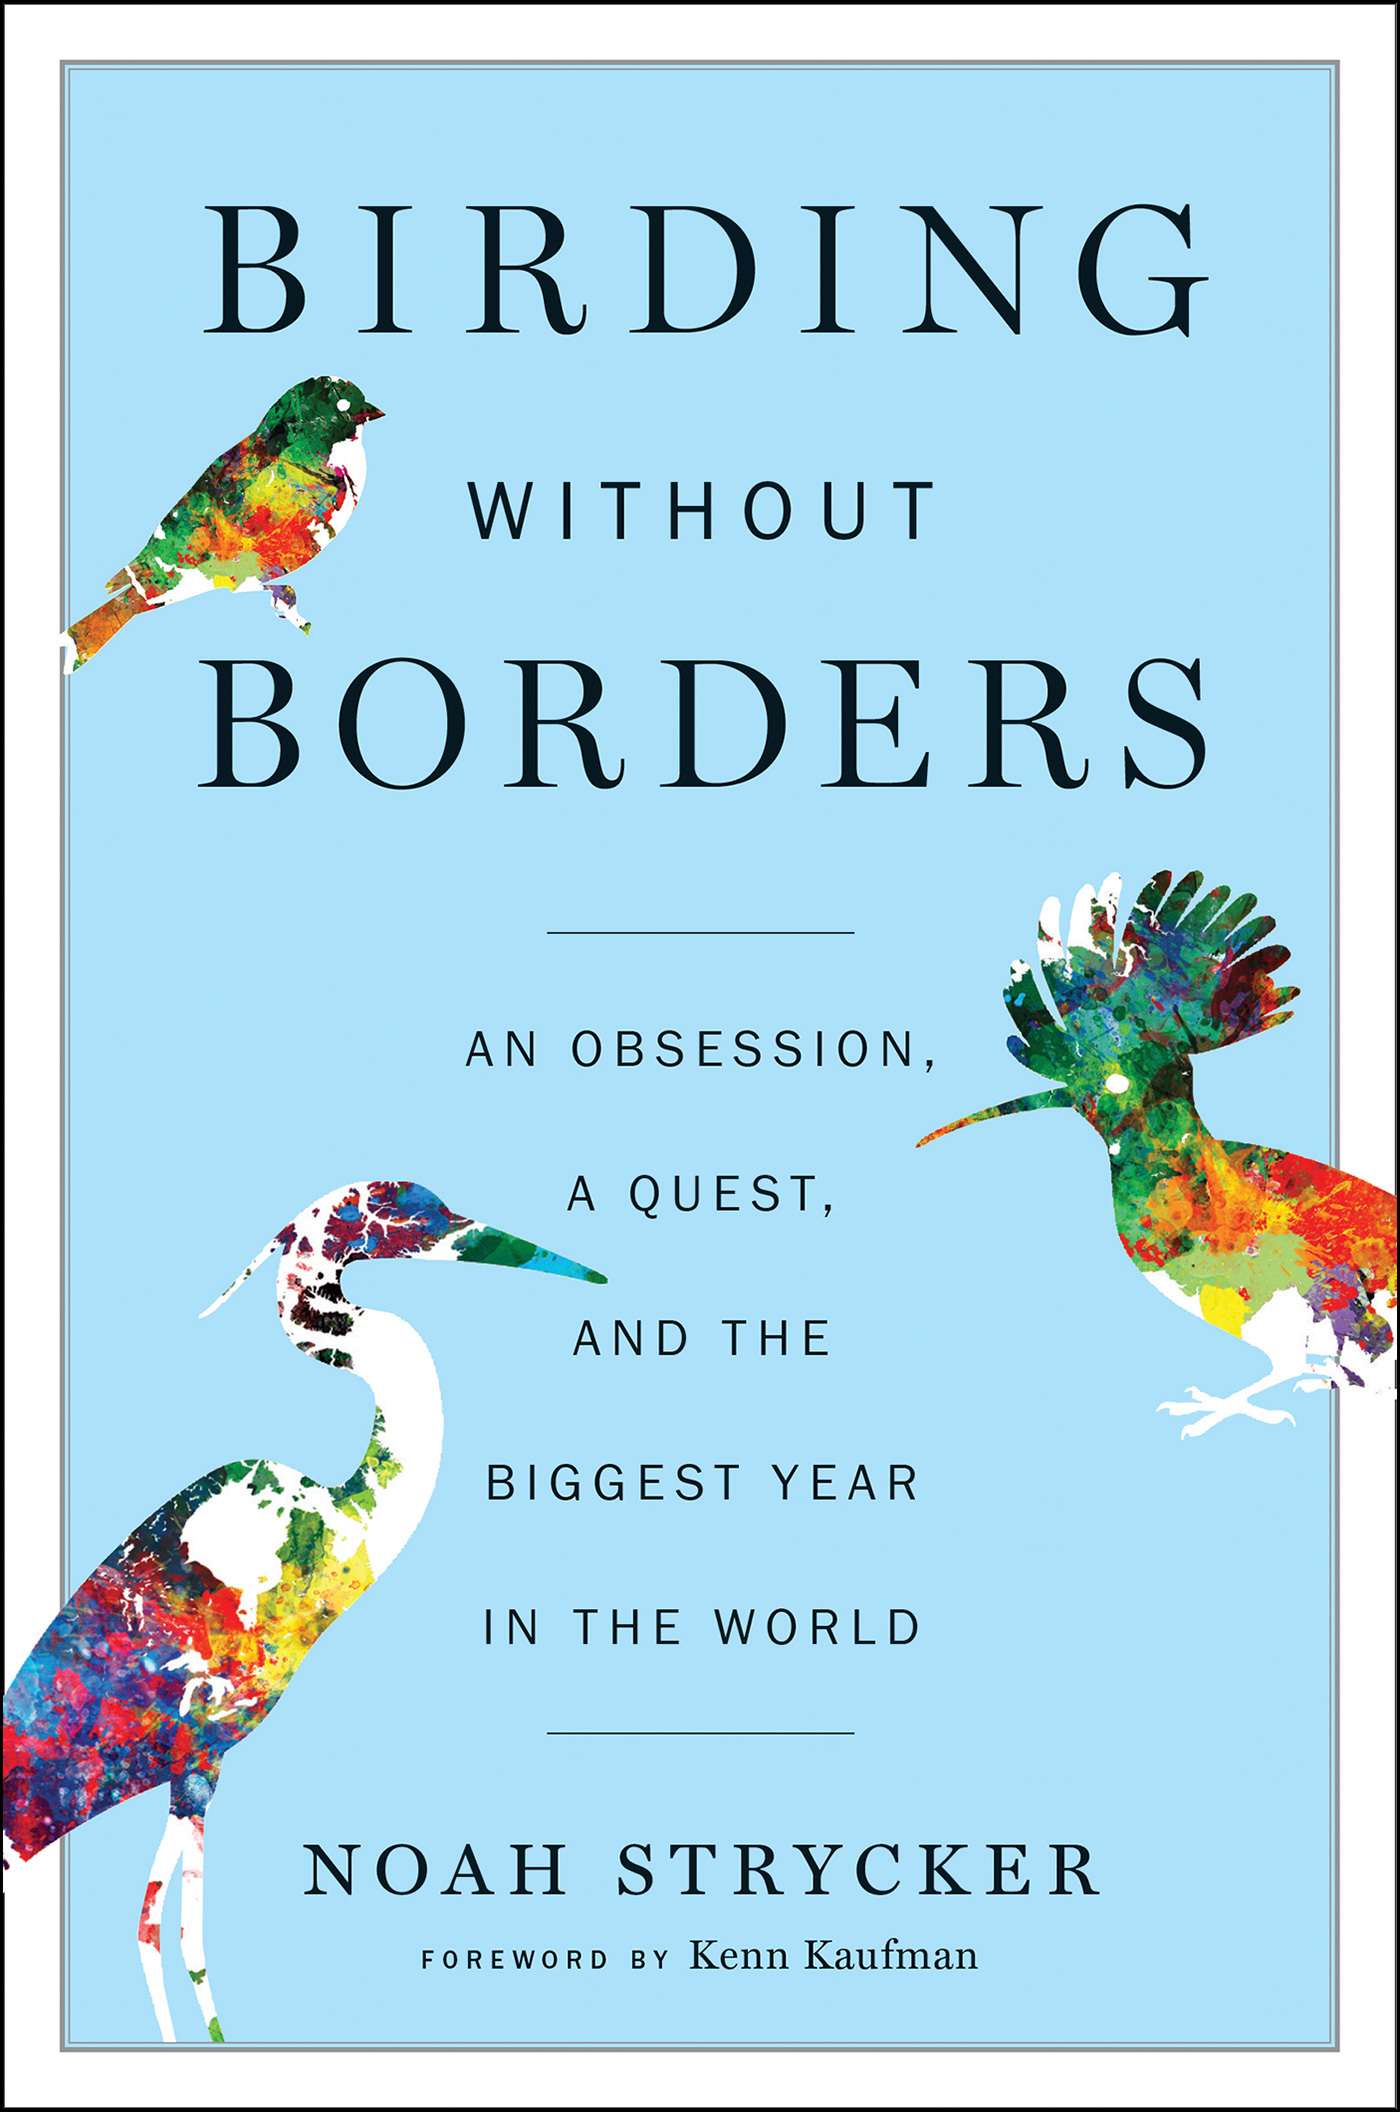 Birding Without Borders An Obsession, a Quest, and the Biggest Year in the World